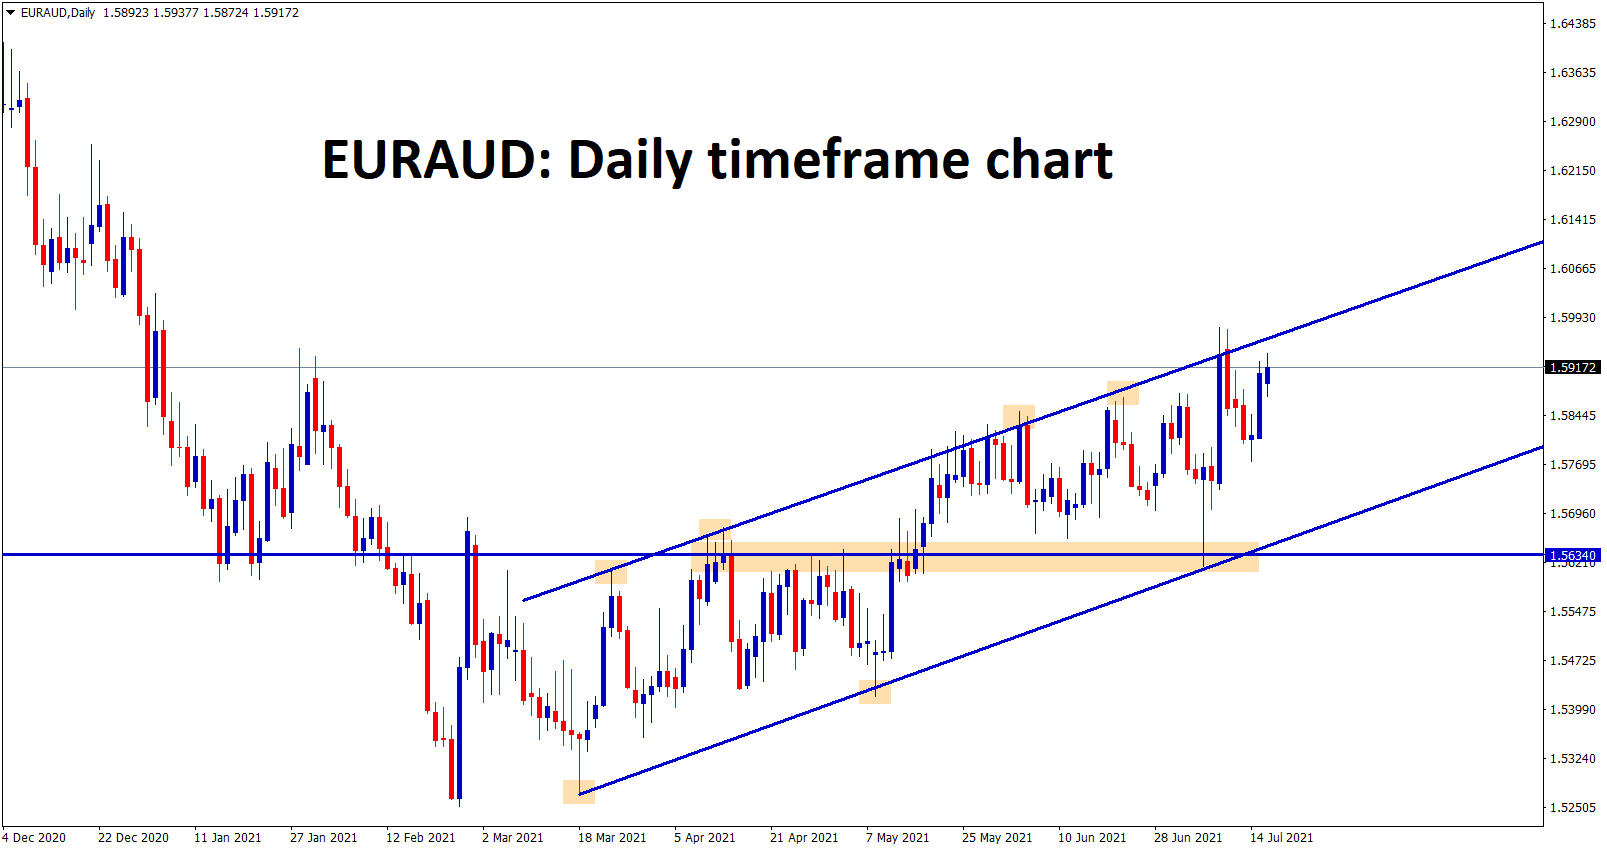 EURAUD continues to rise up by making 40 to 60 retracement in every swing.